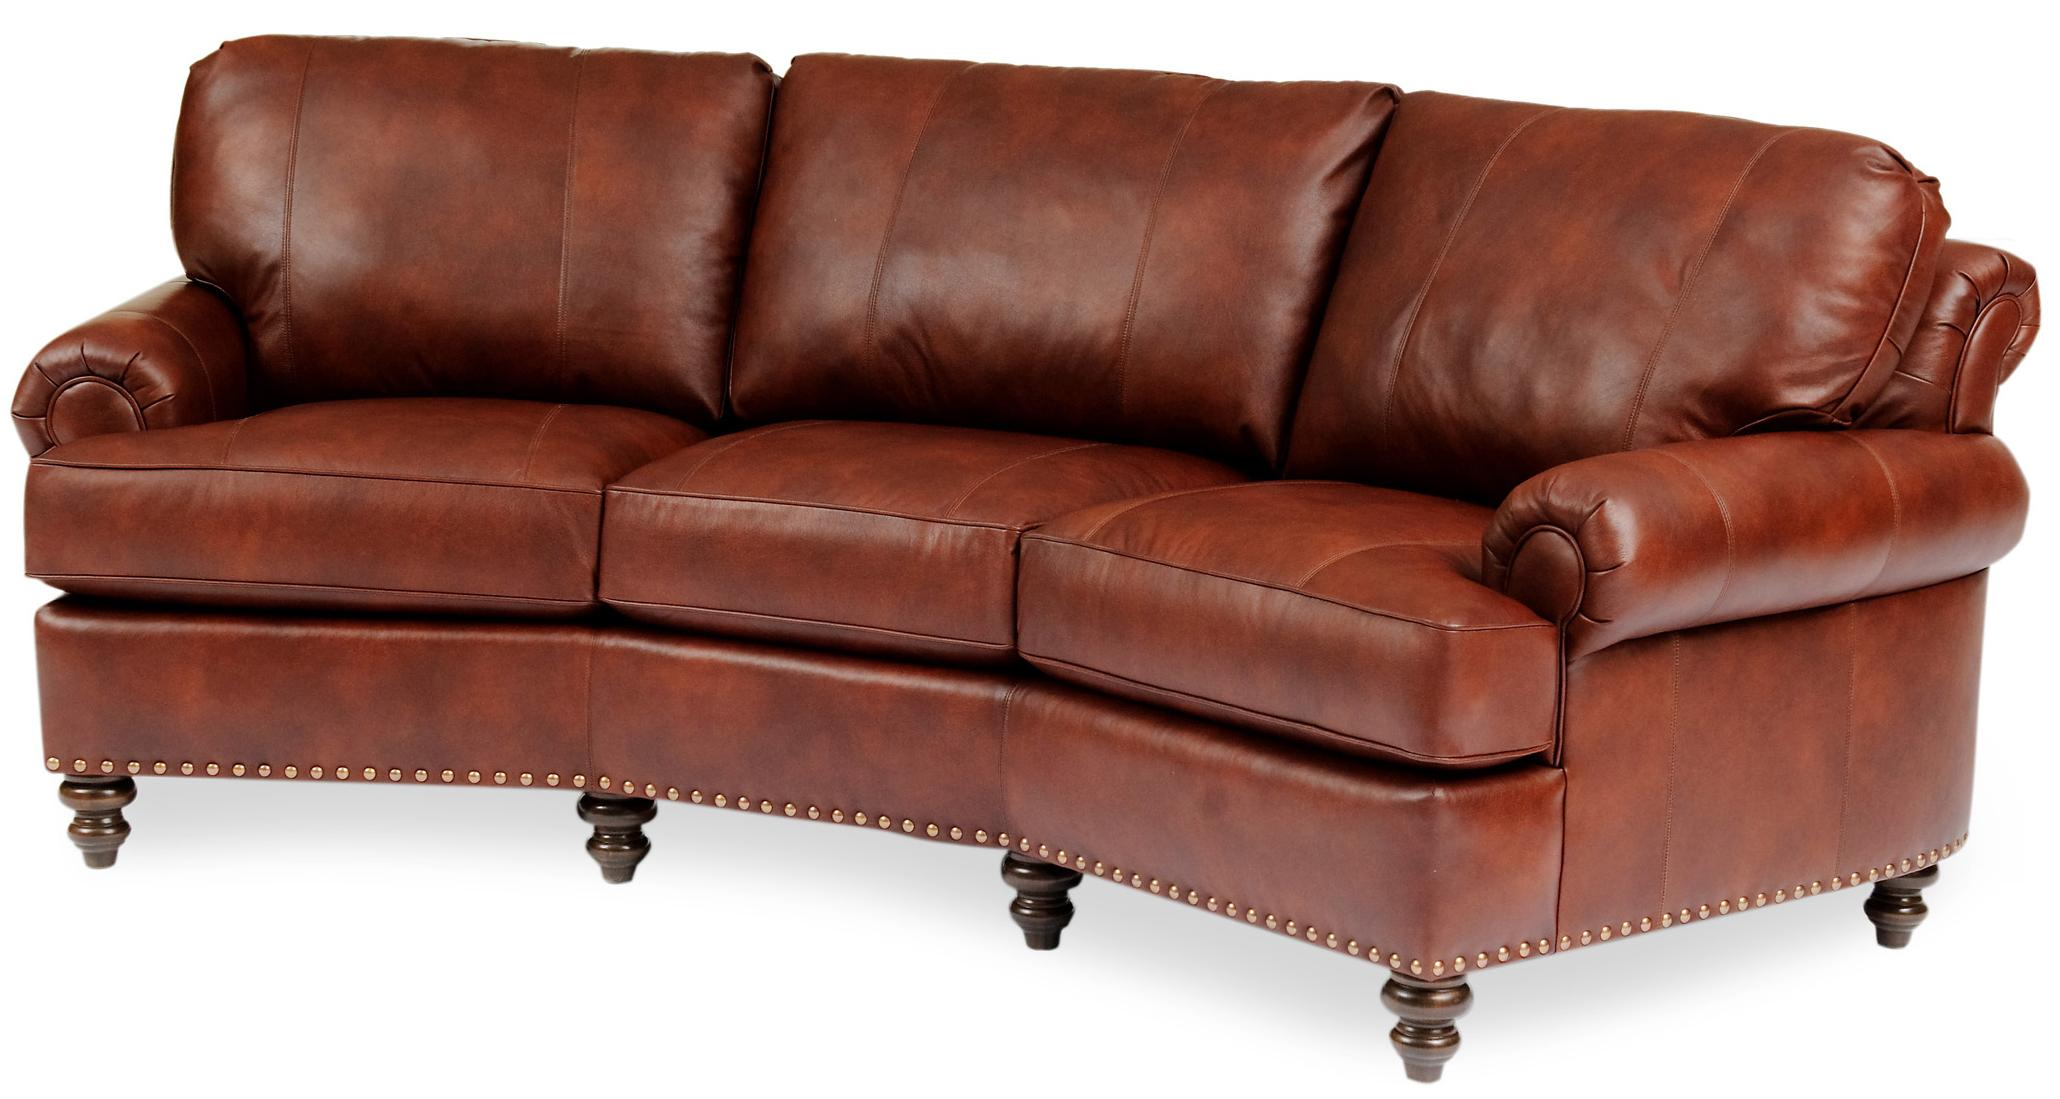 Leather Conversational Sofa with Nailhead Trim by Smith